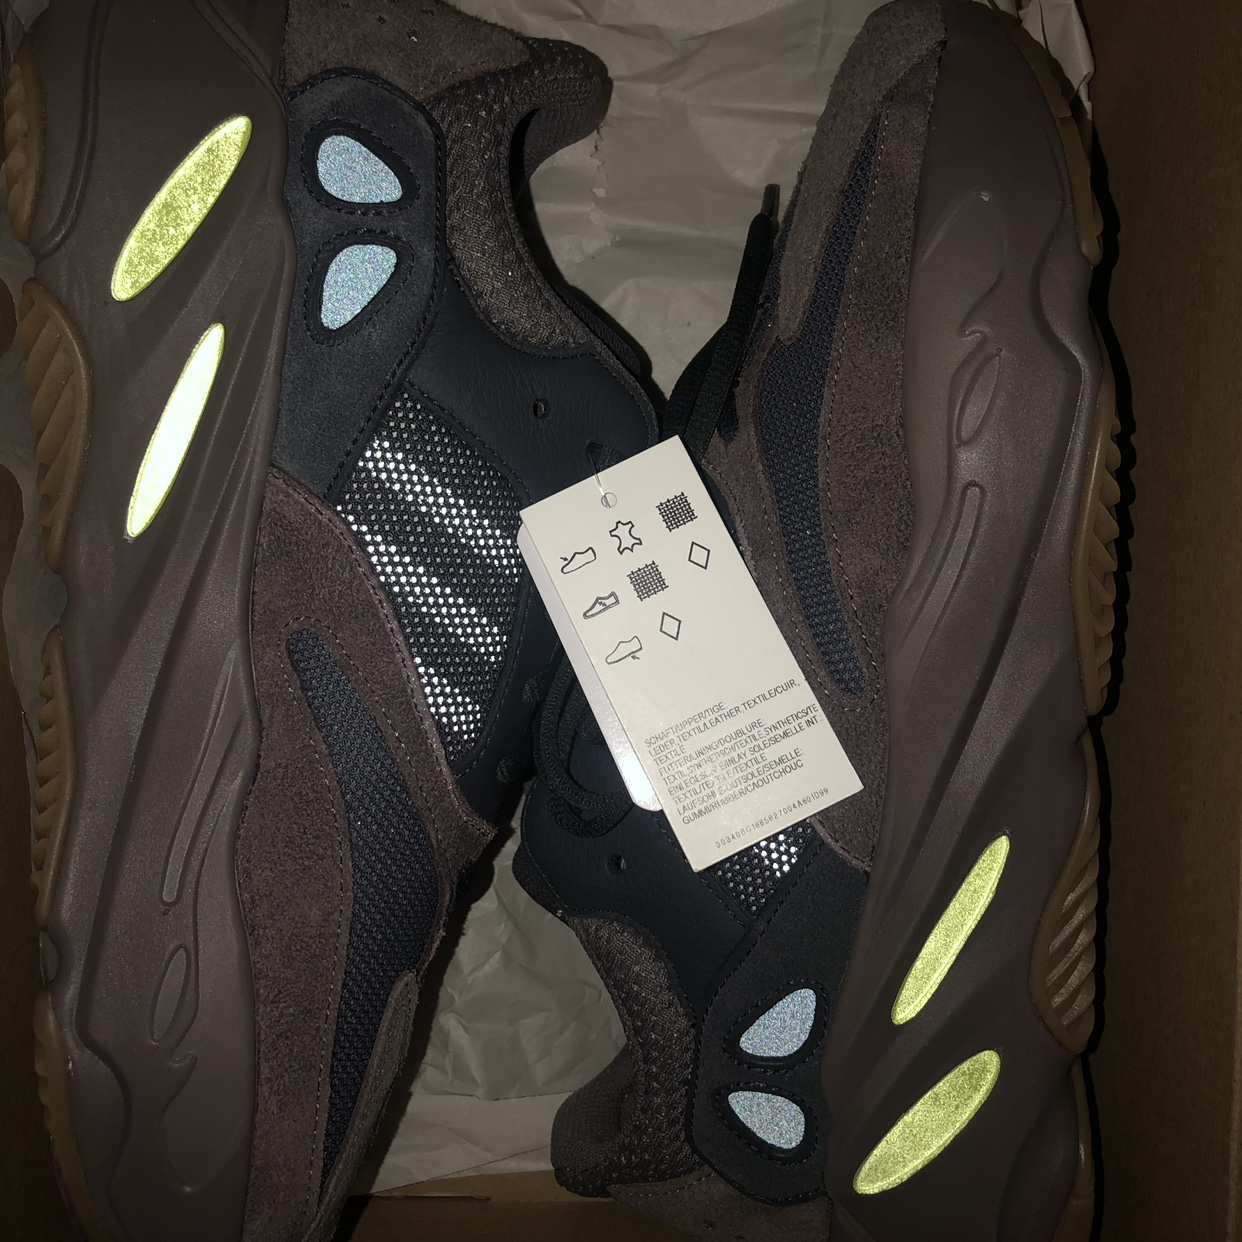 low priced 2f467 1e70a Adidas Yeezy Boost 700 Mauve, US Size 10.5 BRAND... - Depop